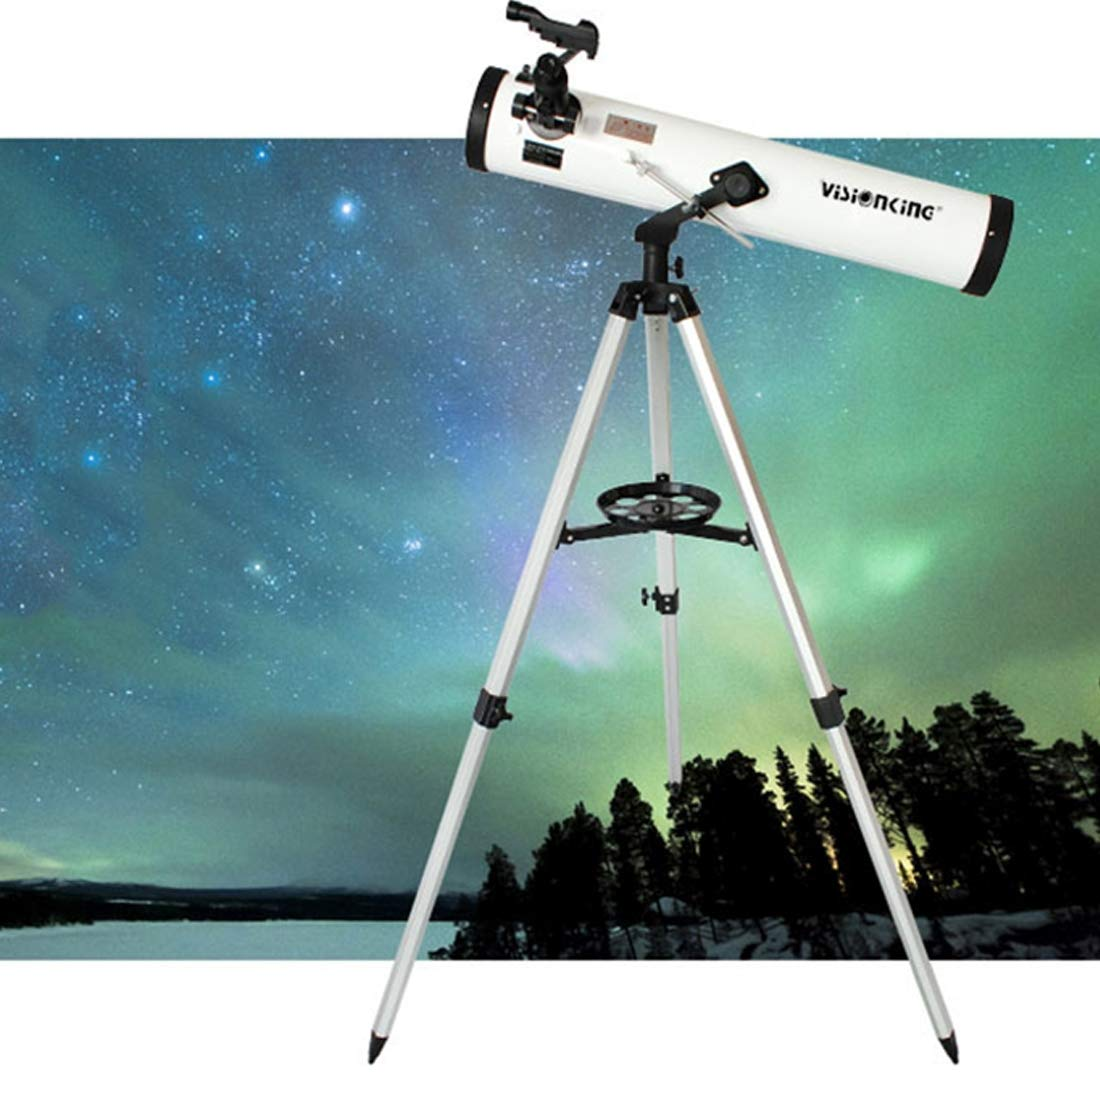 DSLSM Visionking Heights Quality Astronomy (700/76mm) 3 inch Telescope Newtonian Reflector Astronomic Space Telescope by DSLSM